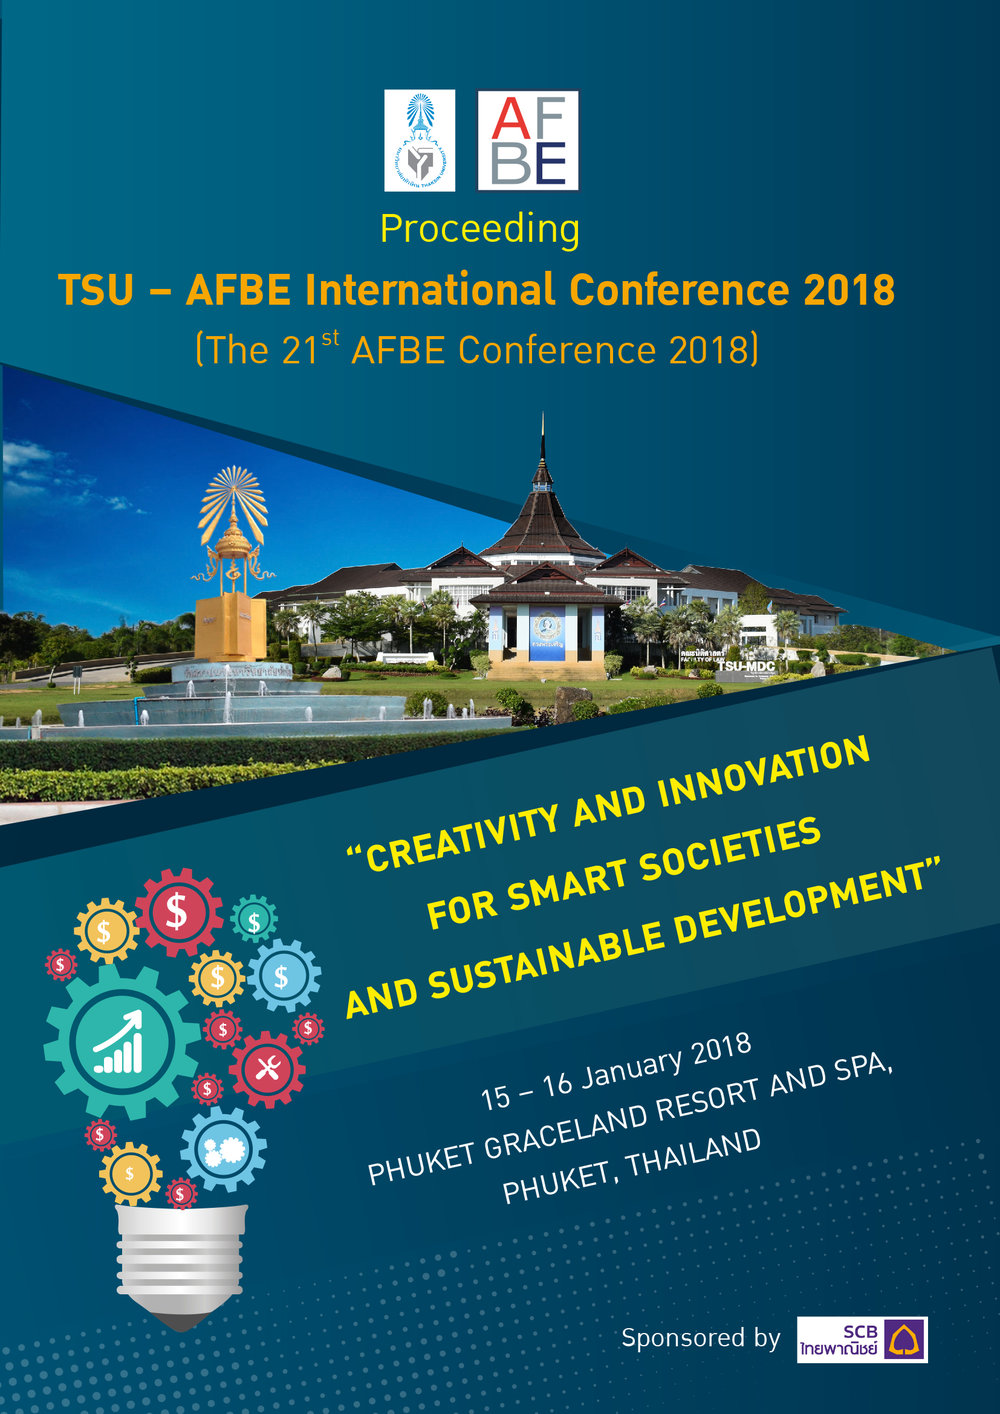 AFBE International Conference 2018Proceeding -